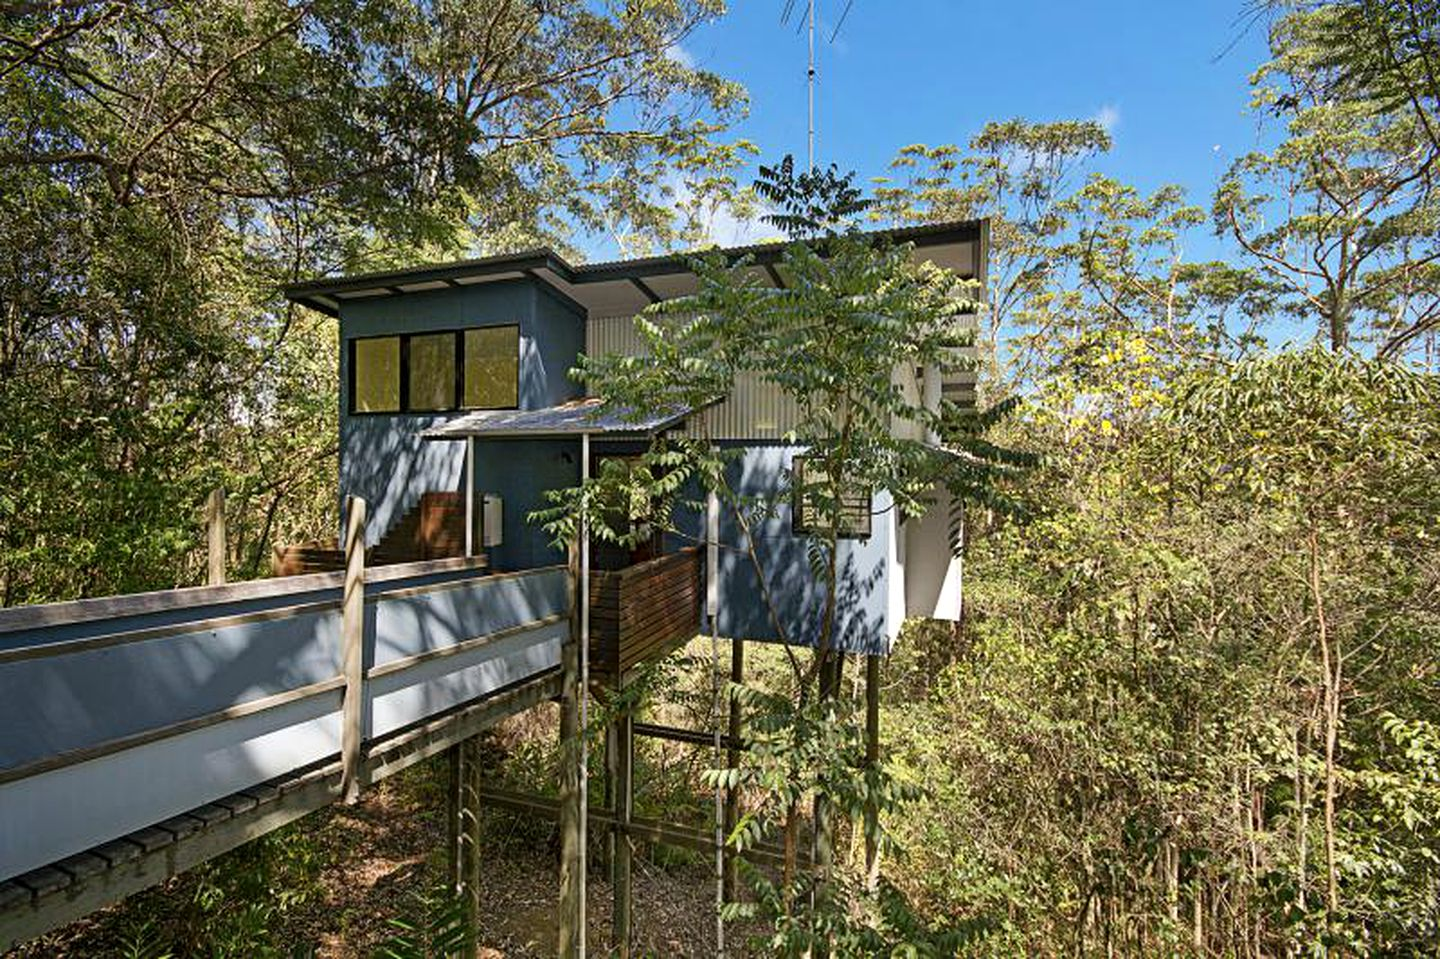 Tree Houses (Sunshine Coast, Queensland, Australia)